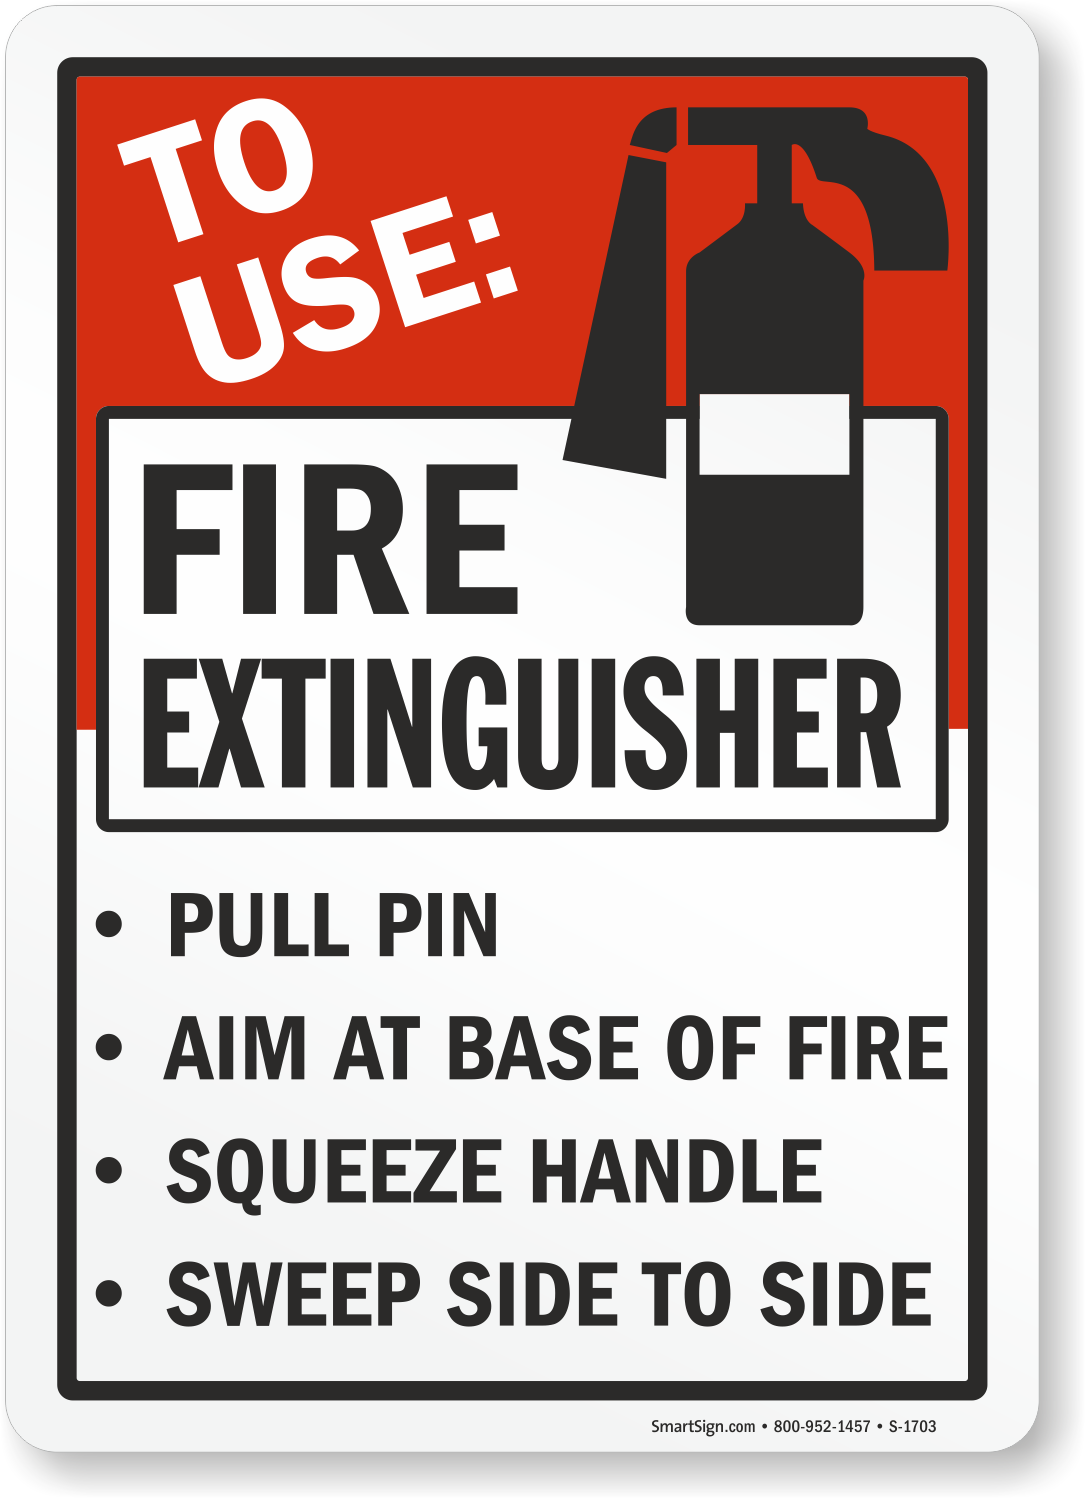 Fire Extinguisher Use Instructions Sign, SKU: S-1703 ...